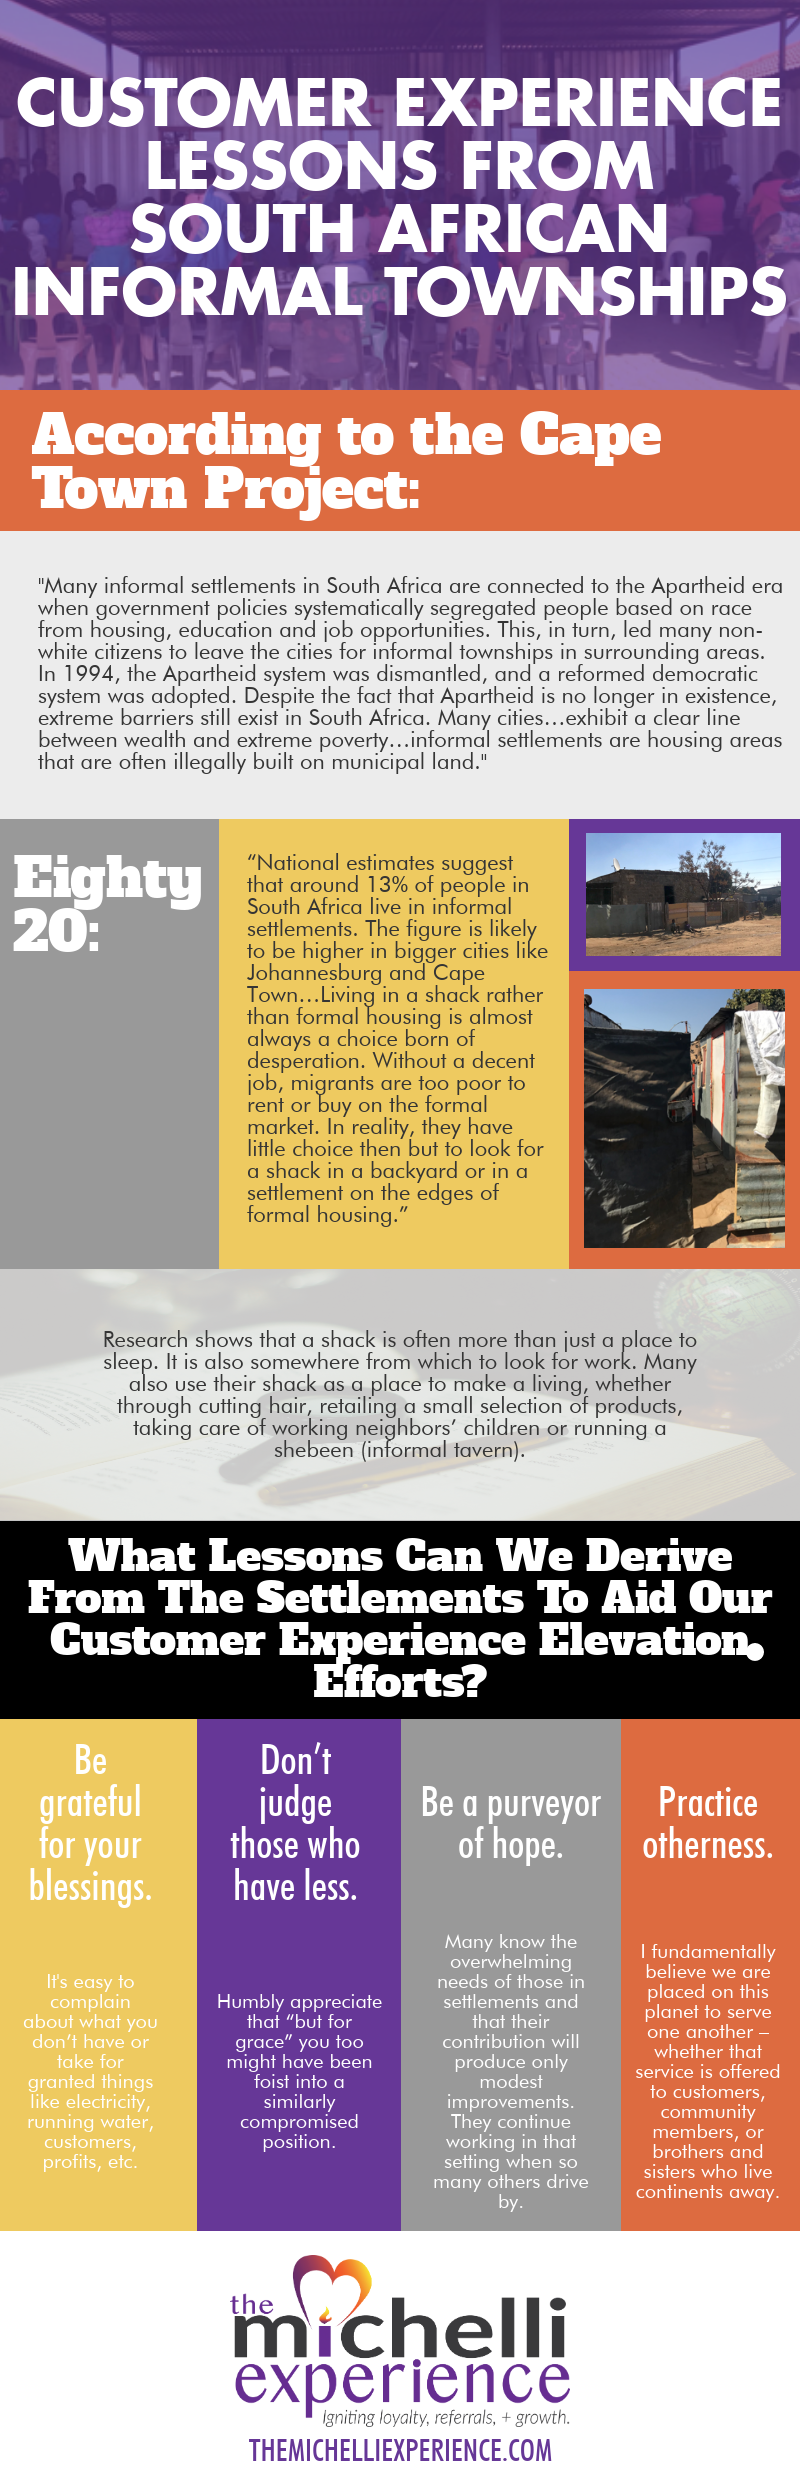 customer experience lessons from south africa informal townships infographic